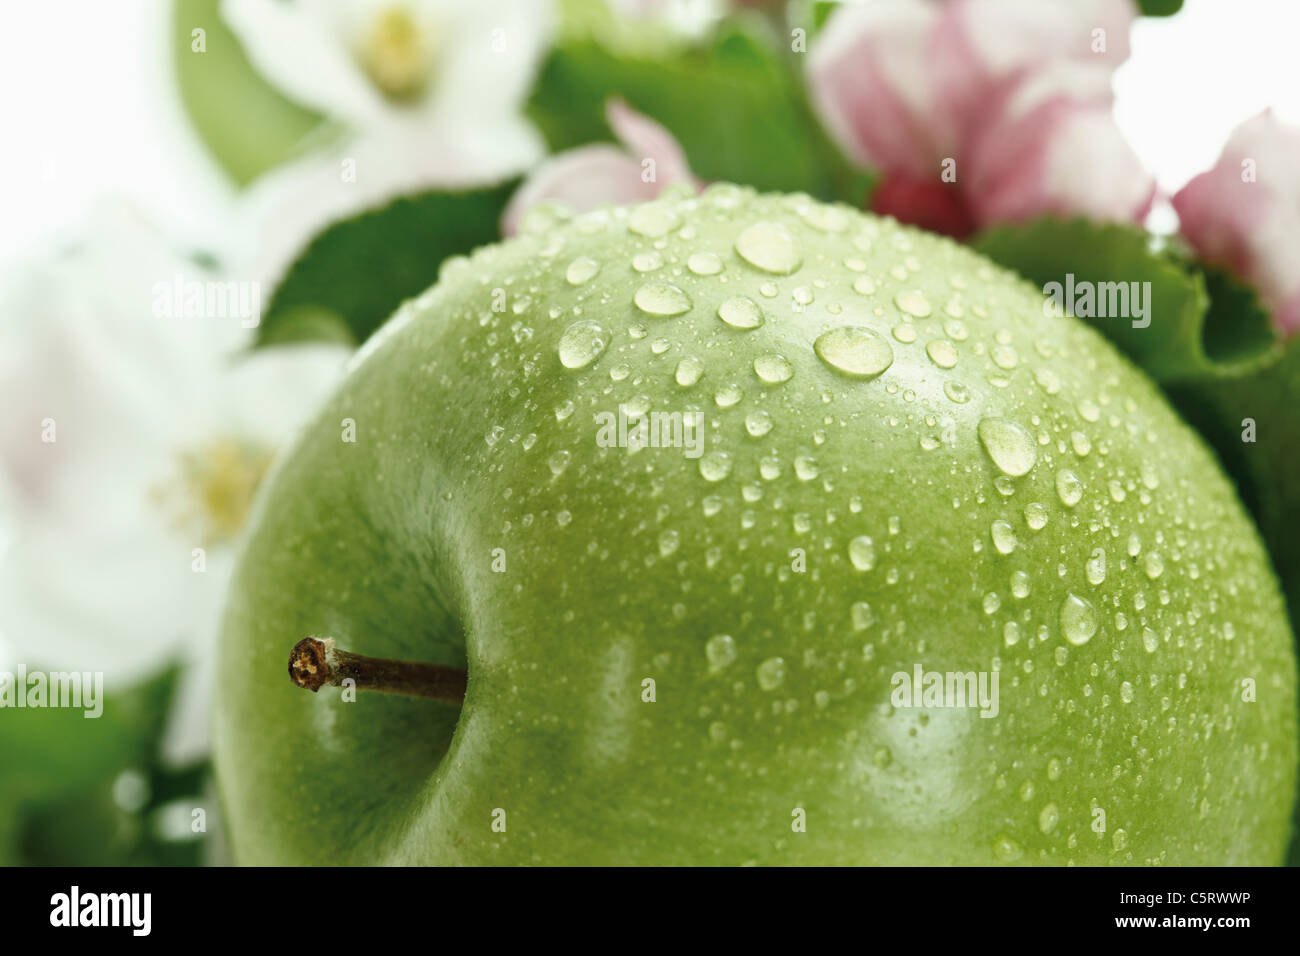 Green apple with water droplets, in background apple blossom, close-up - Stock Image